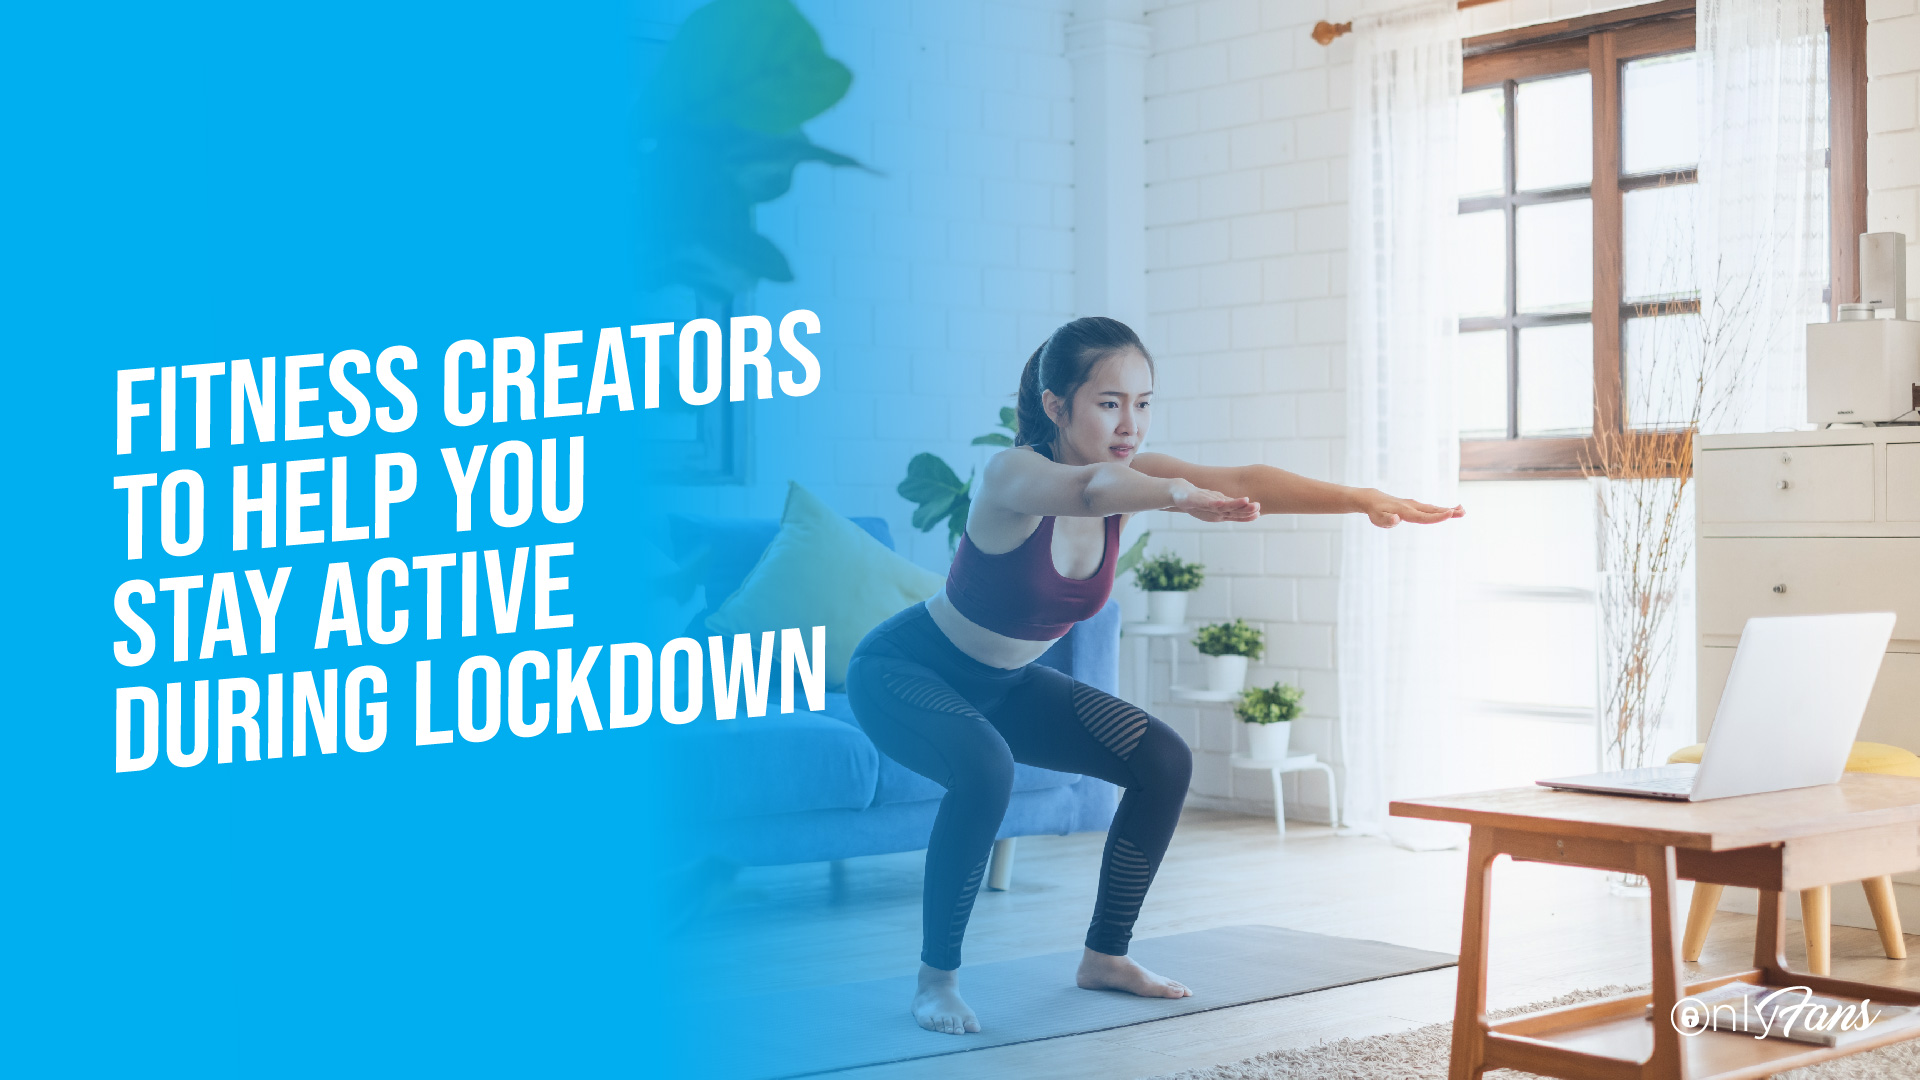 fitness creators to help you stay active during lockdown